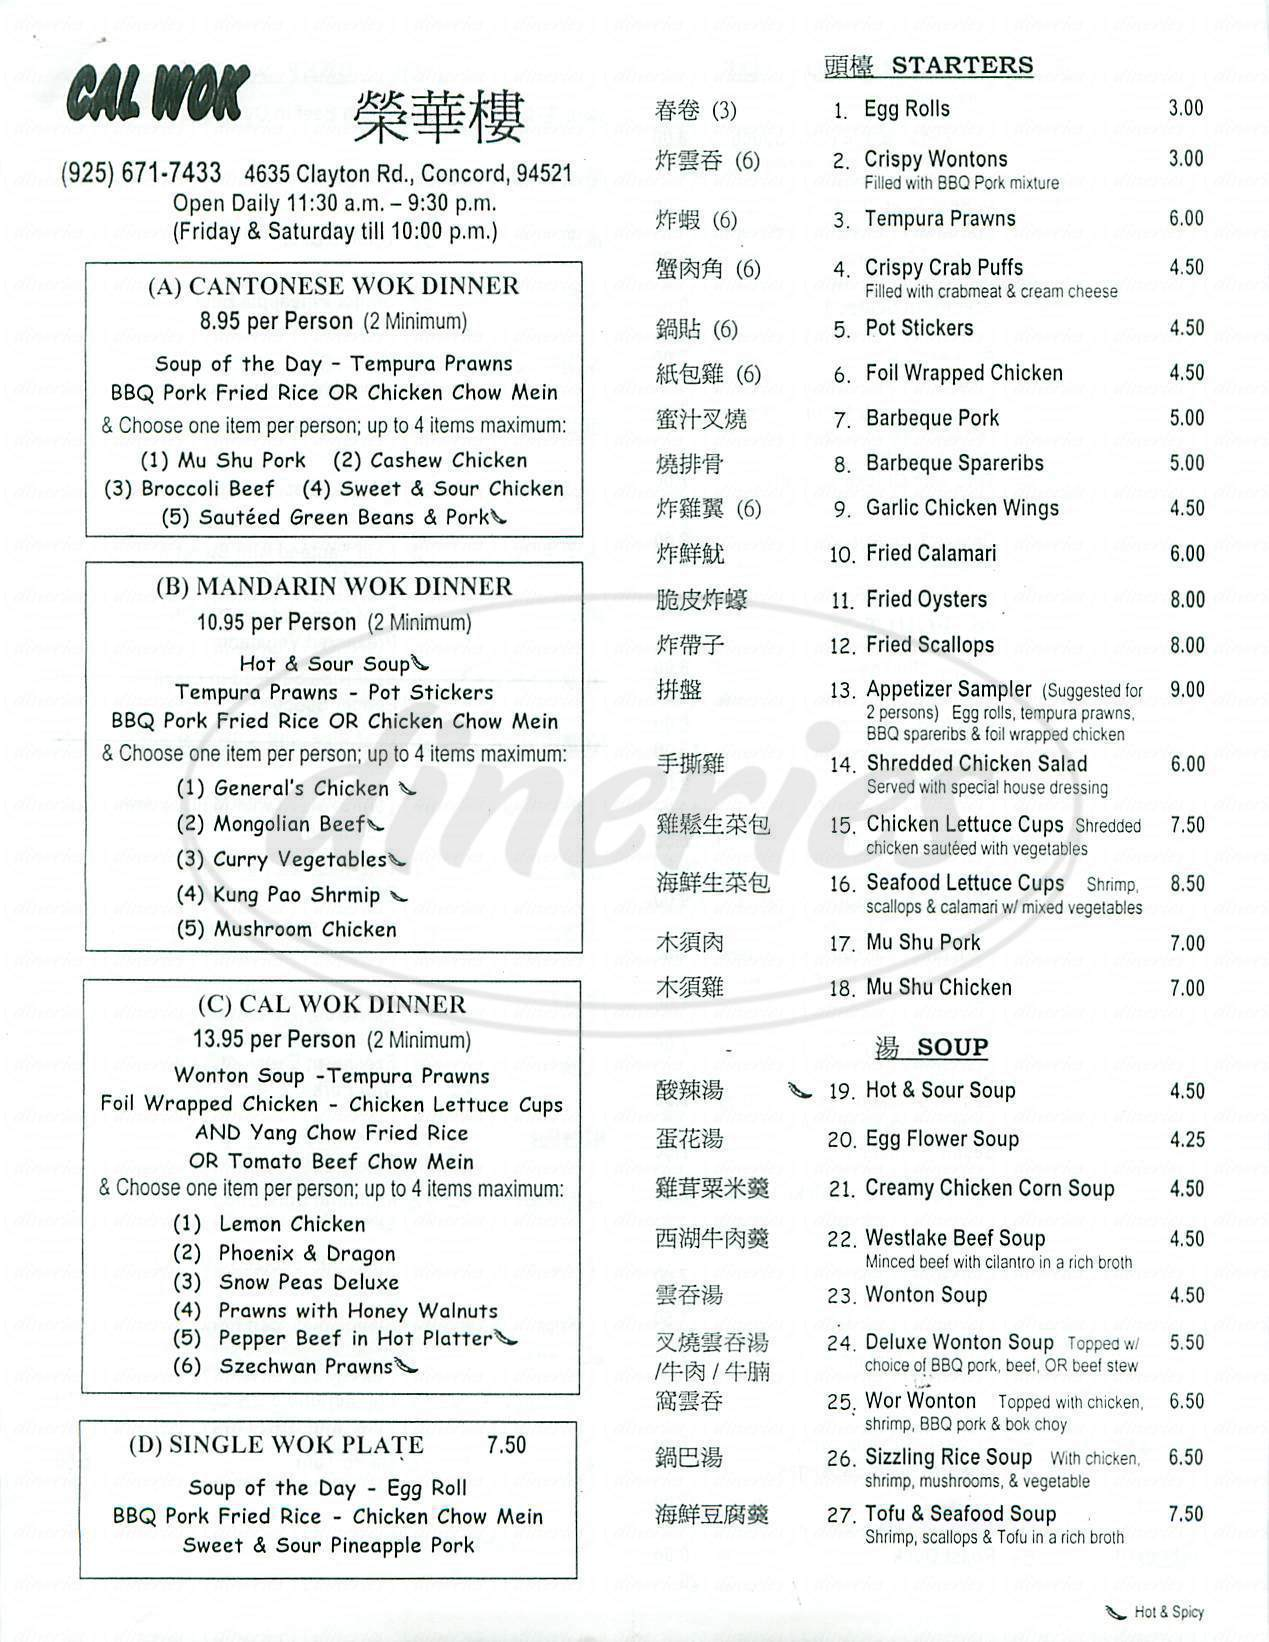 menu for Cal Wok